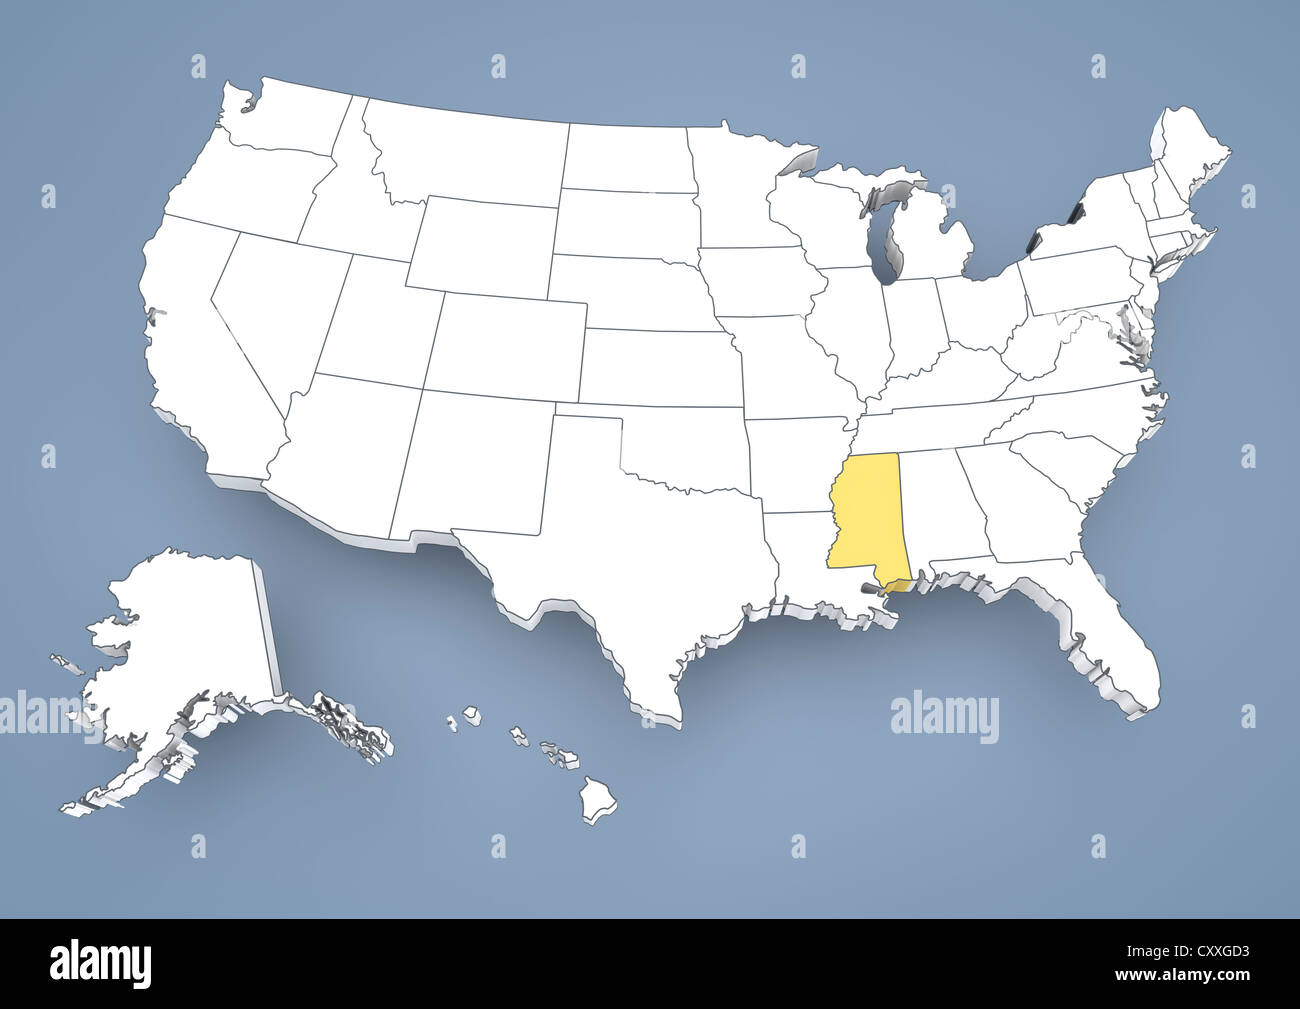 Mississippi Ms Highlighted On A Contour Map Of Usa United States - Us-map-ms